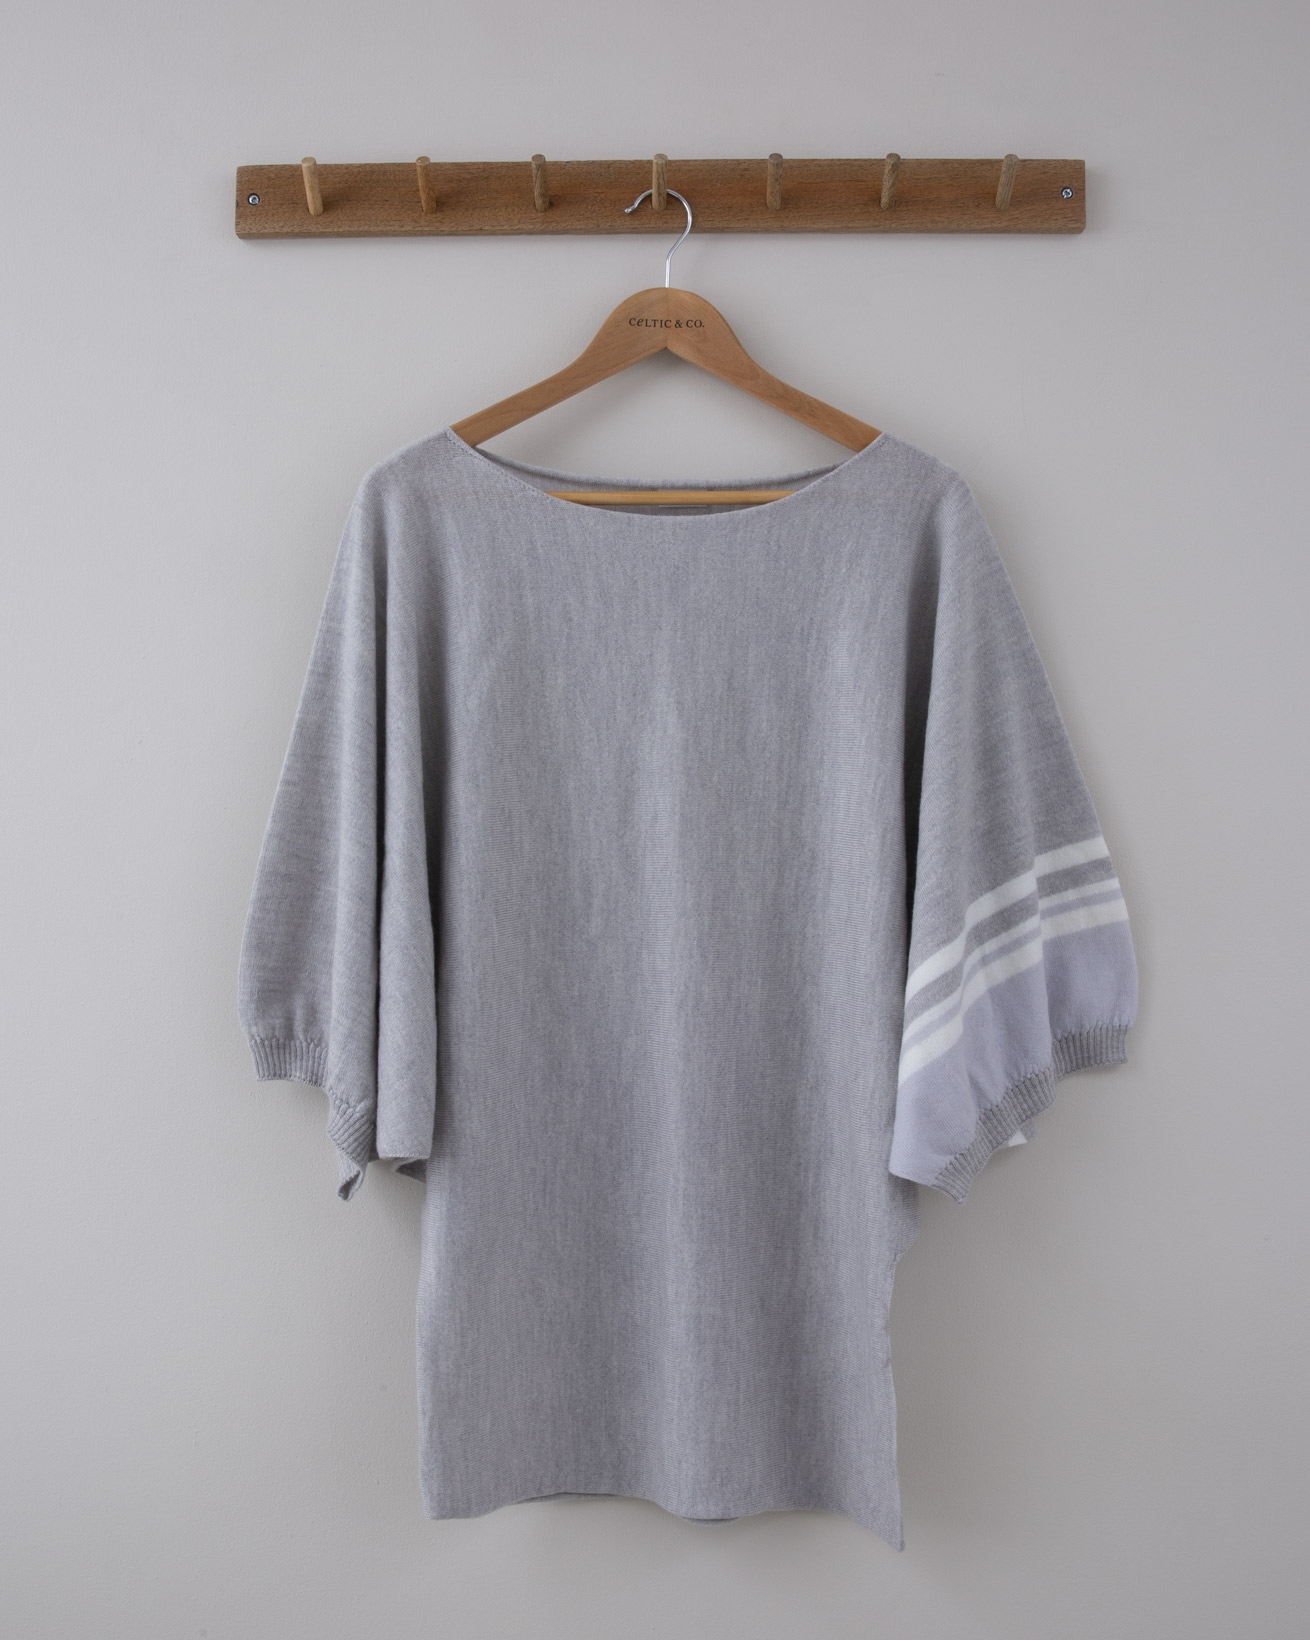 Fine knit Merino Batwing Tunic - Small - Grey with Sporty stripes on the cuff - 1288